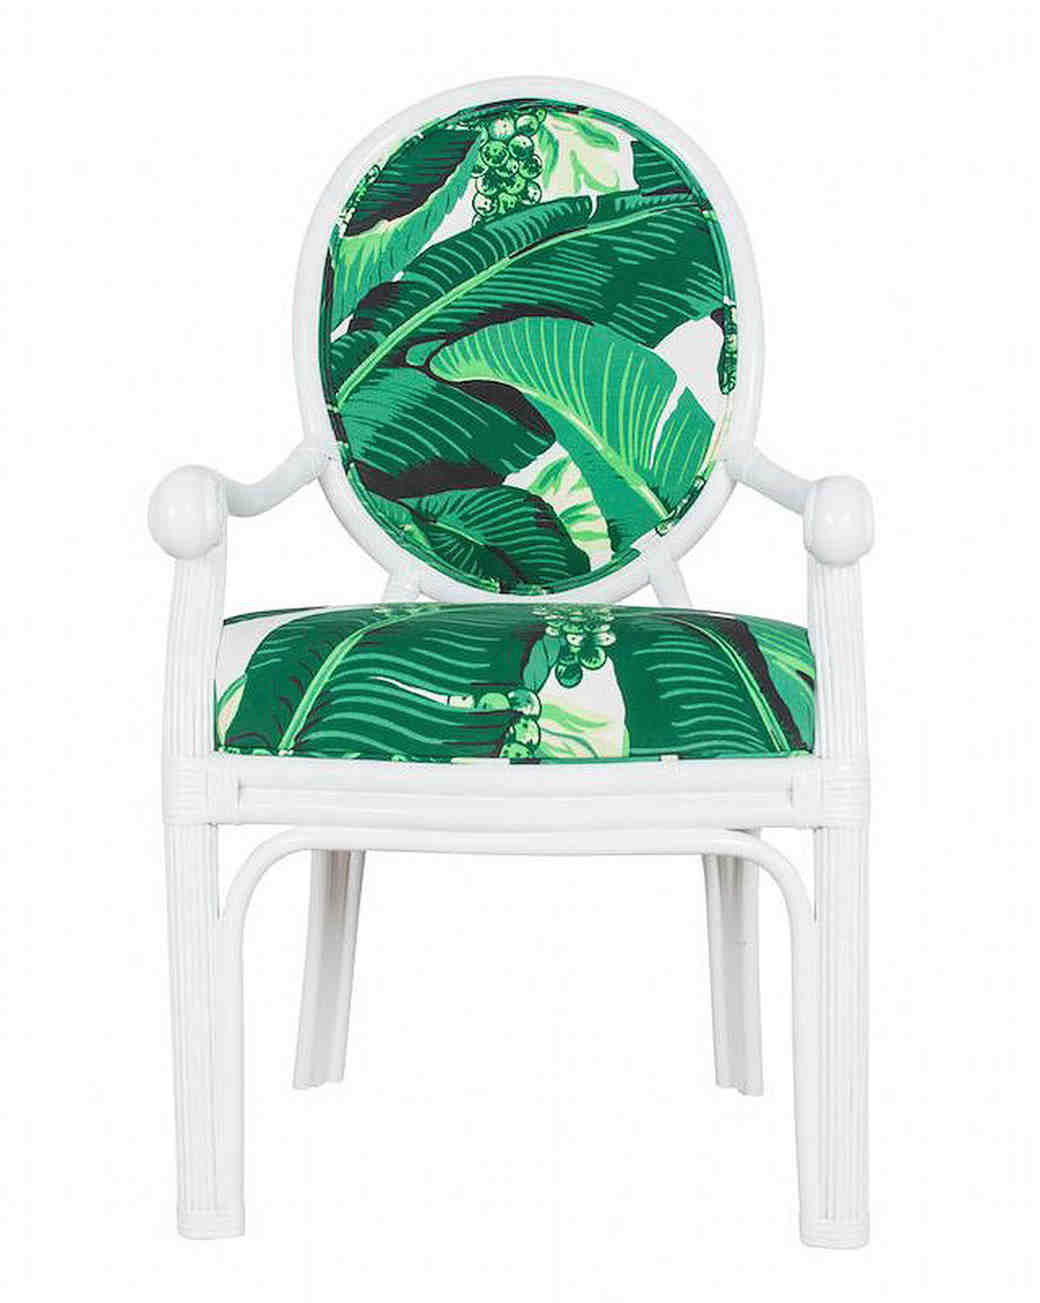 furniture anniversary gift duchess statement chair